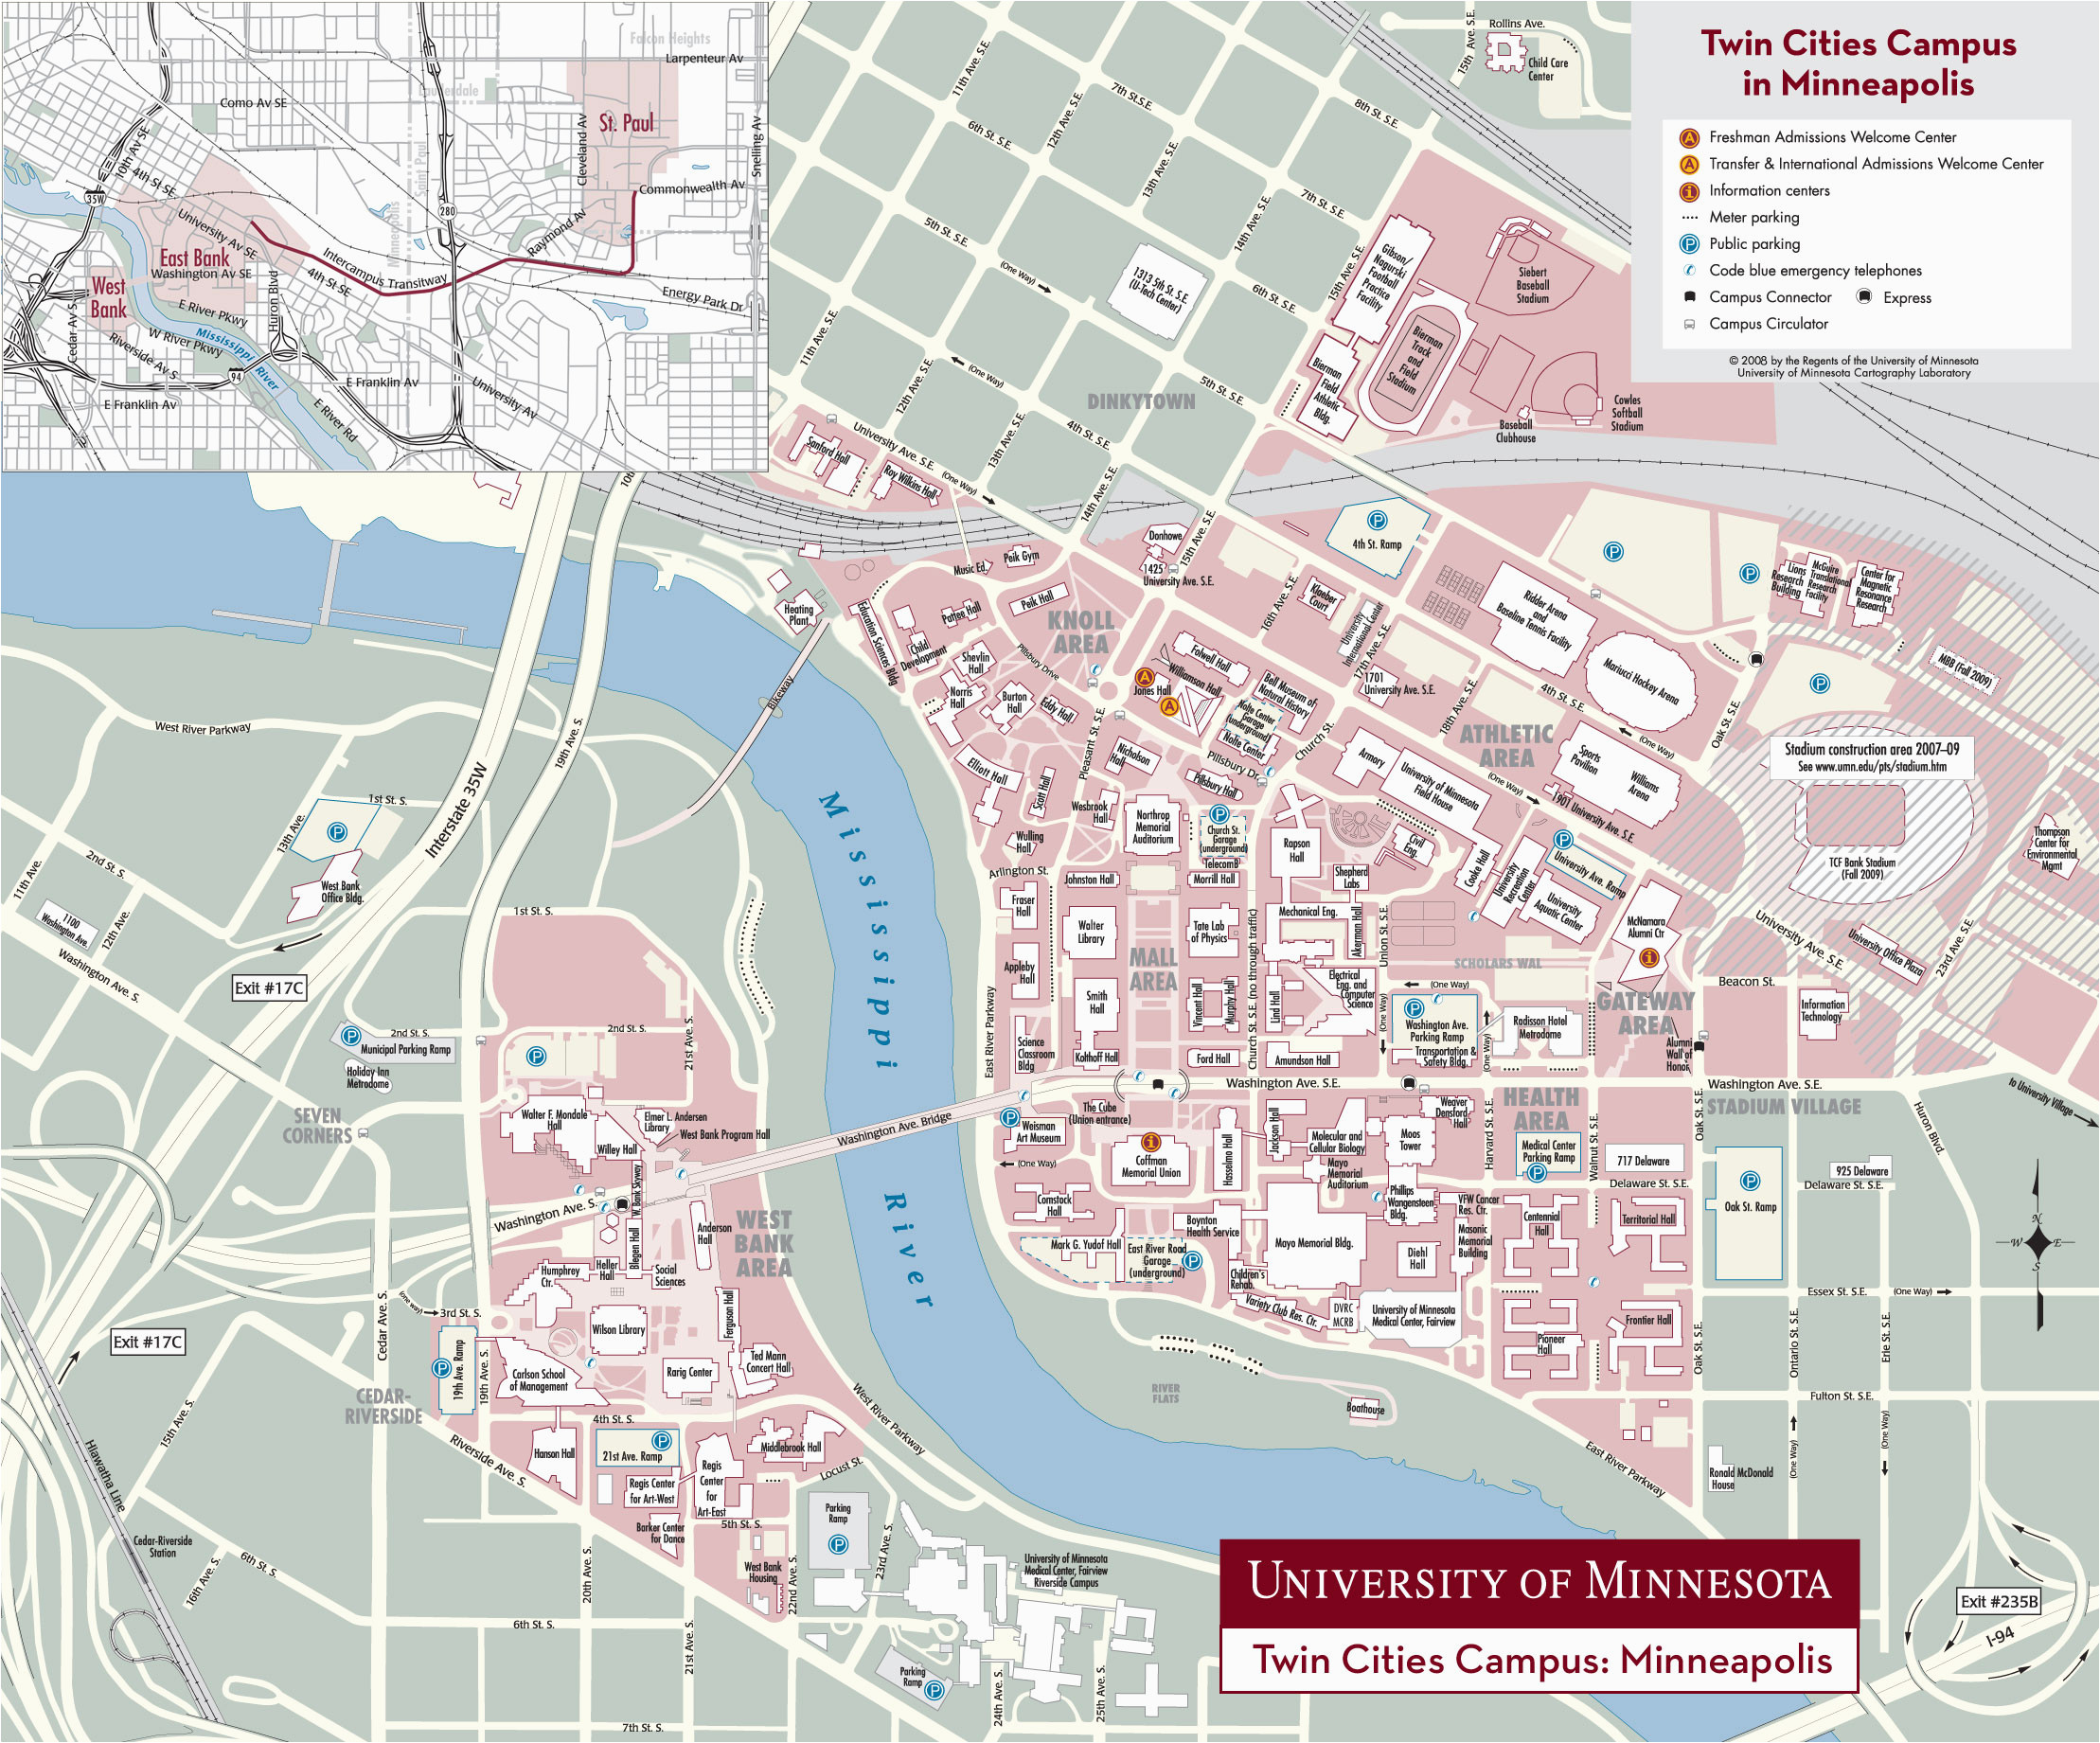 Map Of University Of Minnesota Twin Cities Campus 22 Simple ... U Of M Riverside Campus Map on u of m duluth, u of m minneapolis campus, university of minnesota twin cities map, u of montana map, u of m stadium map, university of michigan map, u of m campus art, u of m welcome, u of m ann arbor, u of m dearborn campus, u of m north campus, u of m health care, u of m dearborn map, u of mn outdoor track, university of minnesota football stadium map, columbia housing map, u of m twin cities map, u of mn parking map, u of m wallpaper, u of m home,